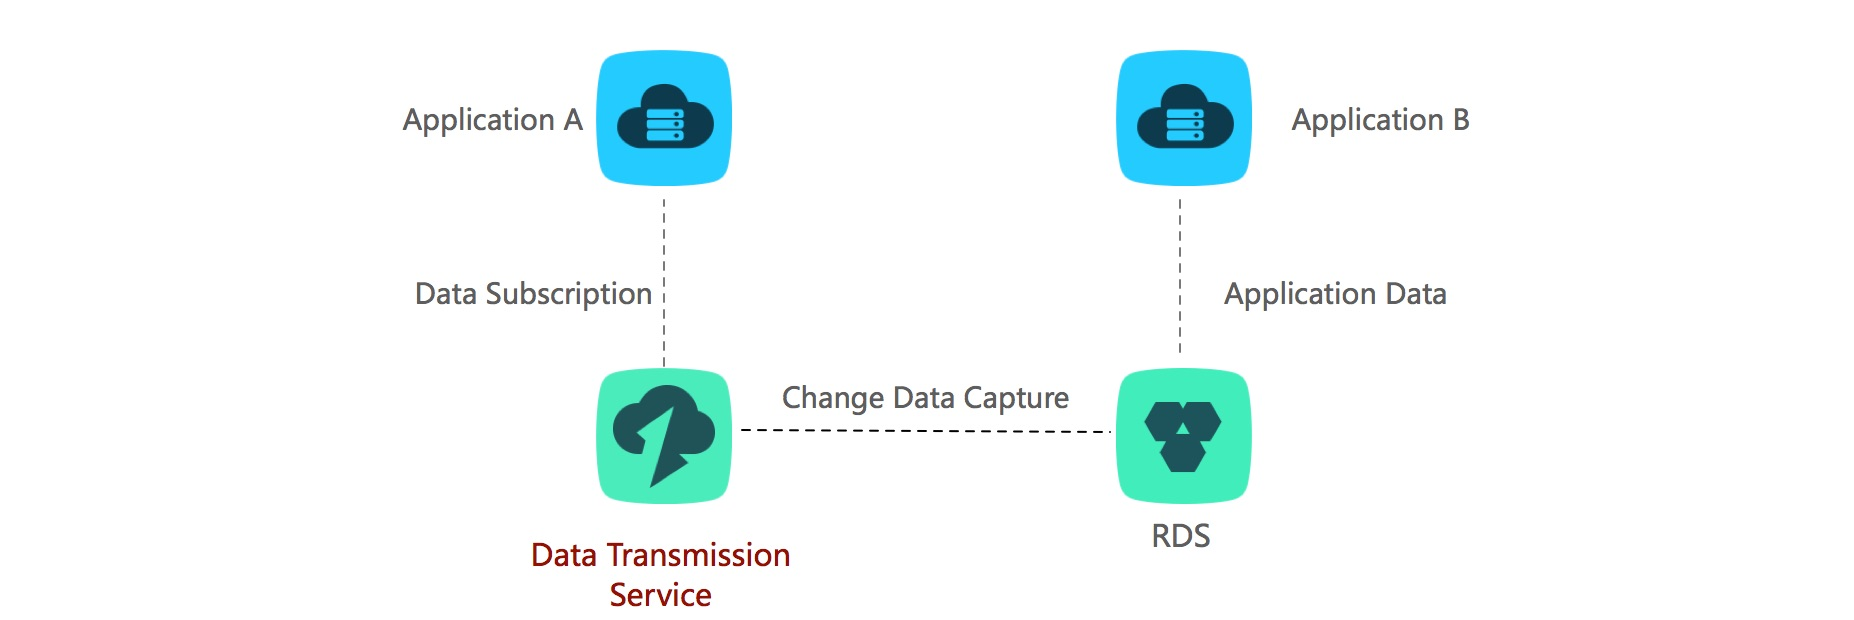 Data Transmission Service: Data Migration and Synchronization